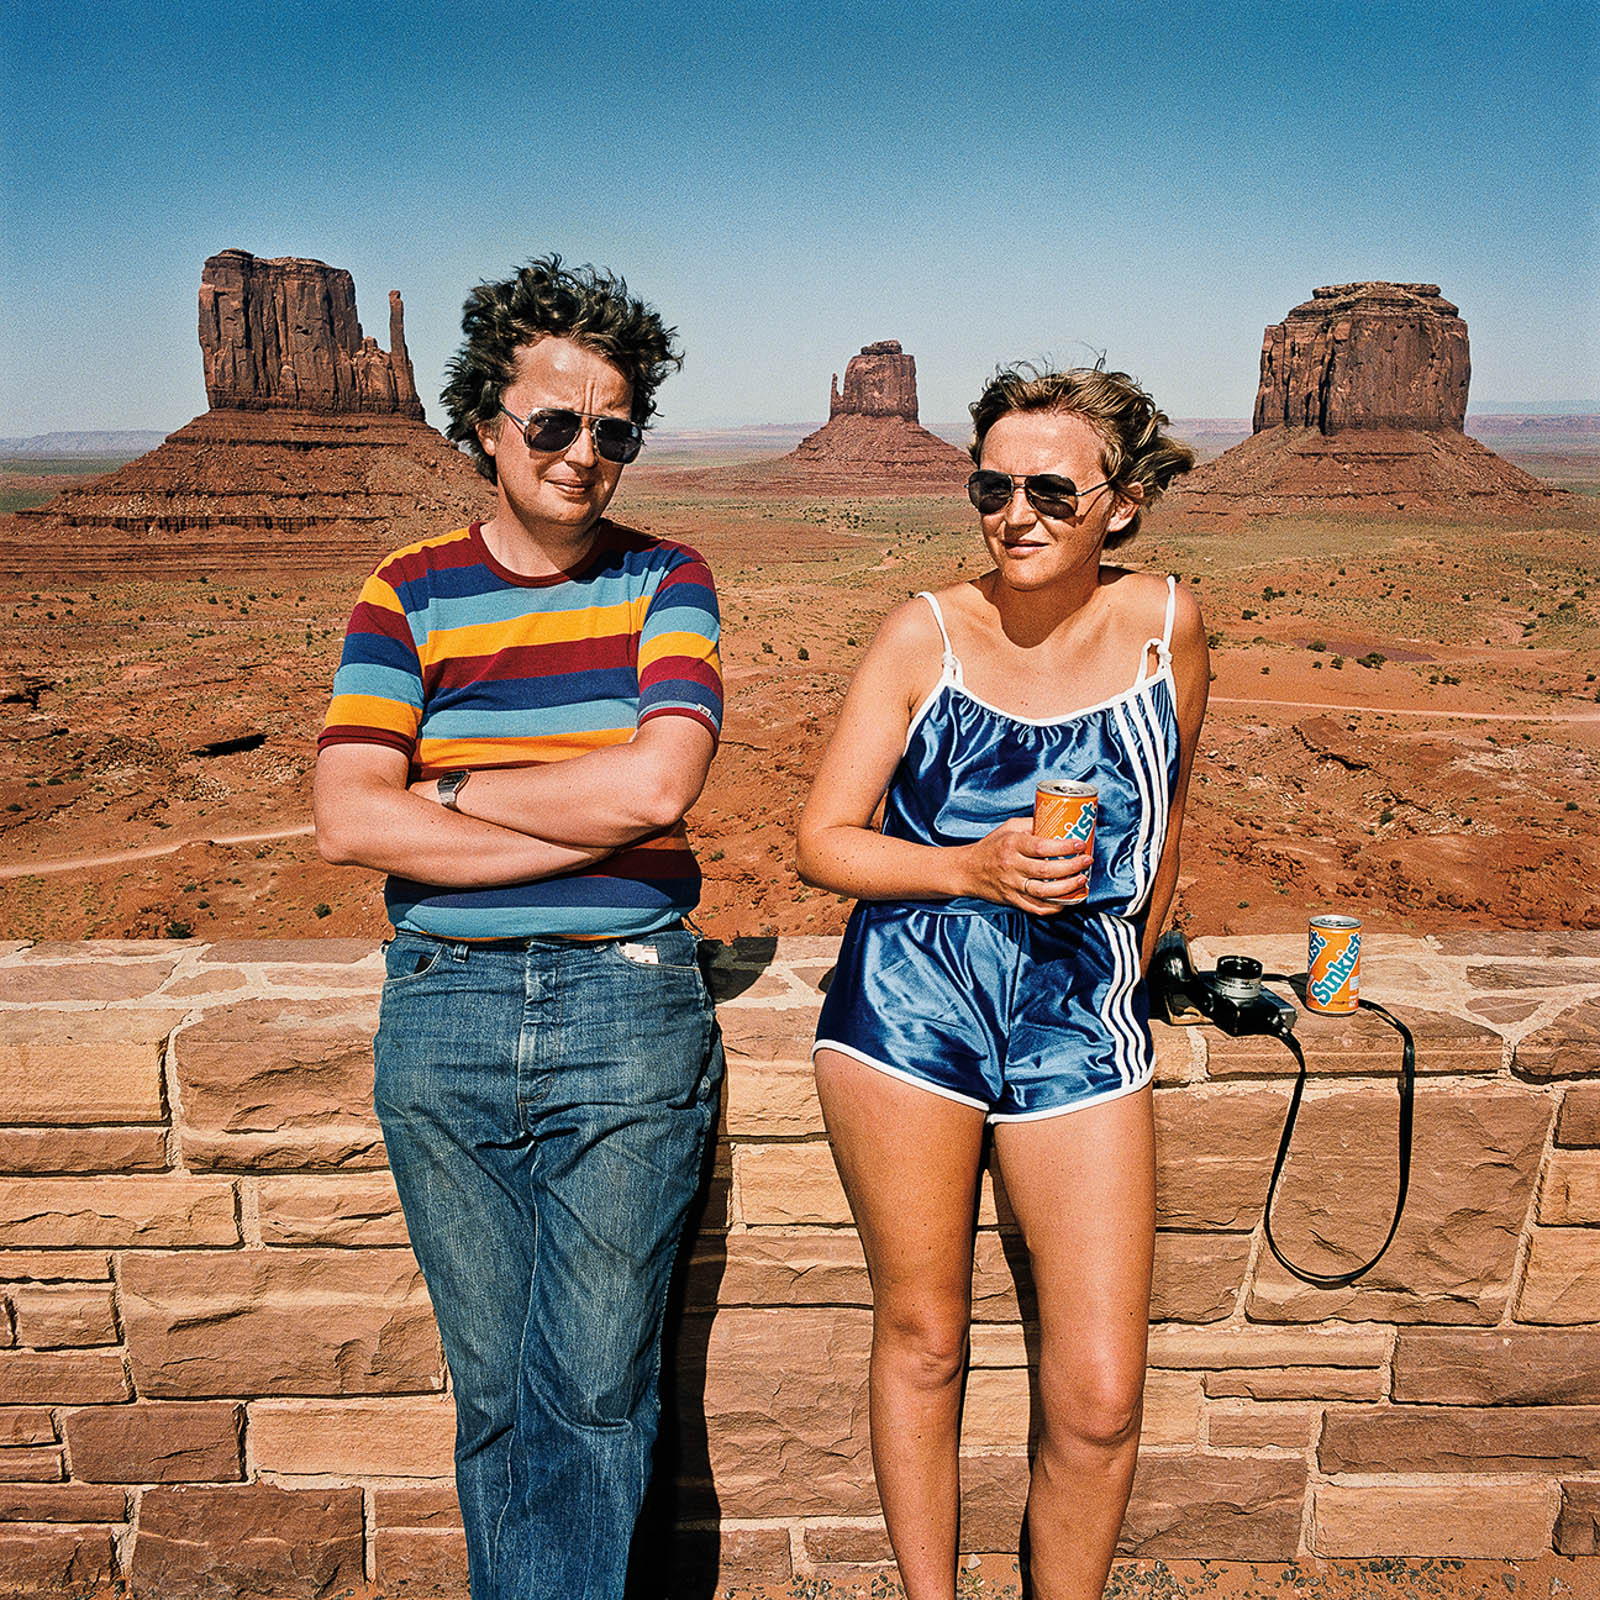 Couple at Monument Valley, Utah 1980